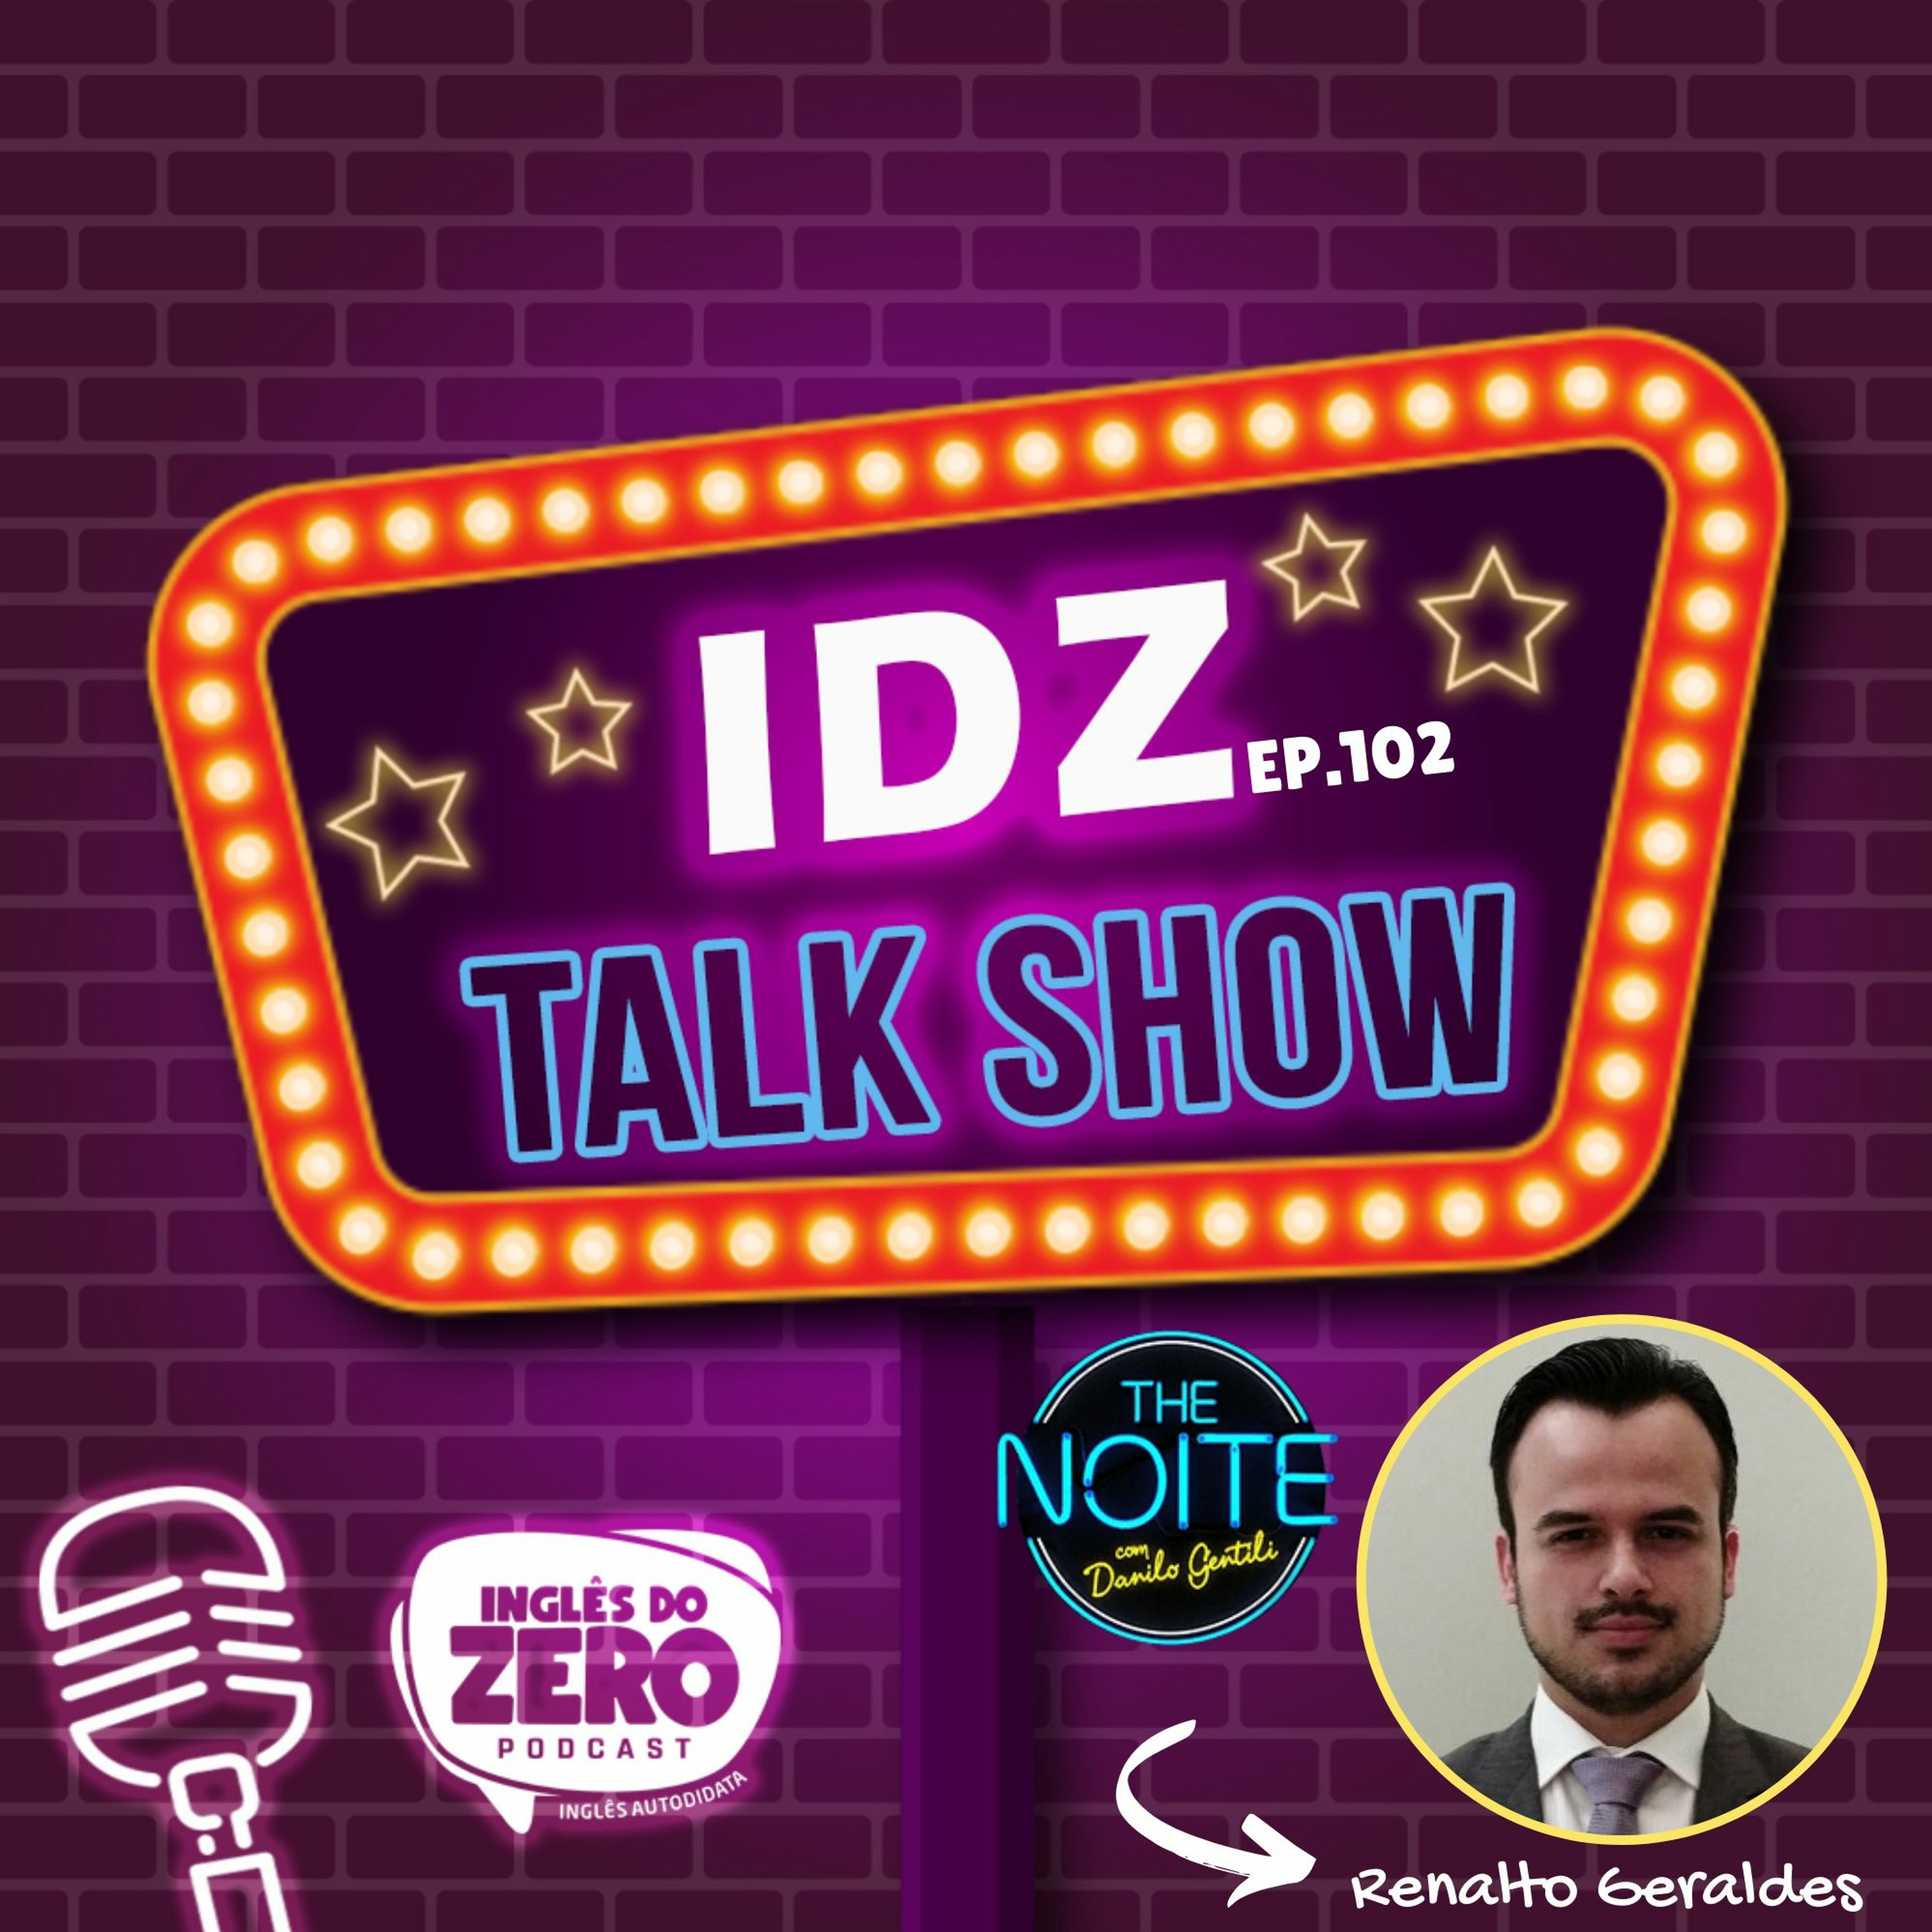 IDZ #102 - IDZ TALKSHOW #03 - RENATO GERALDES Intérprete do The Noite